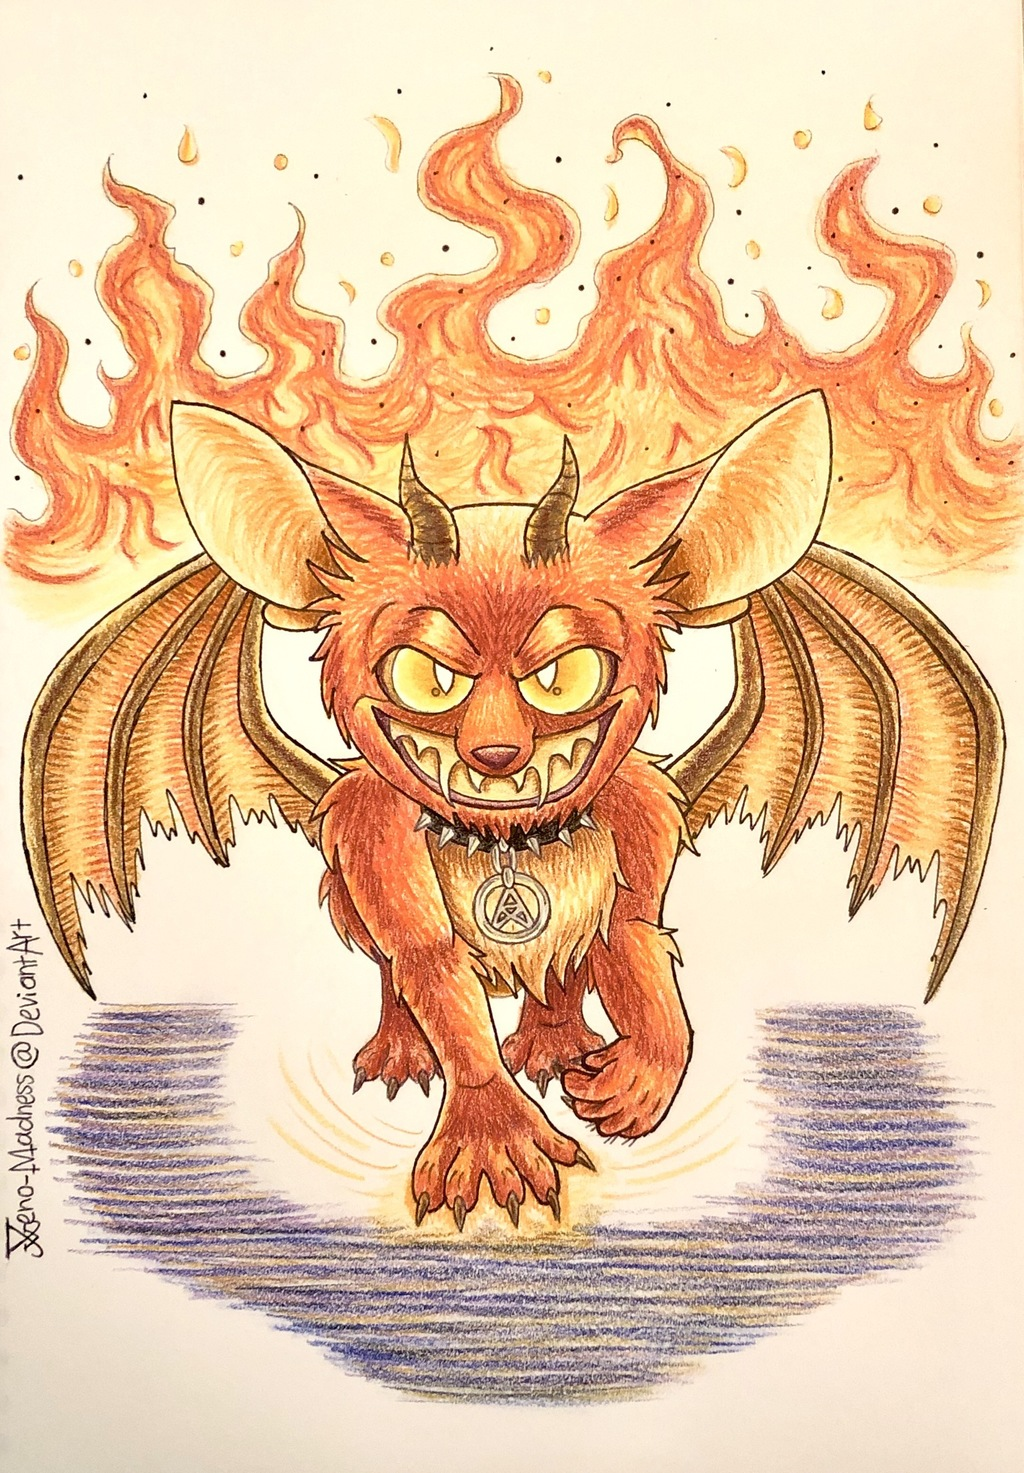 Come forth the Demon in Fiery